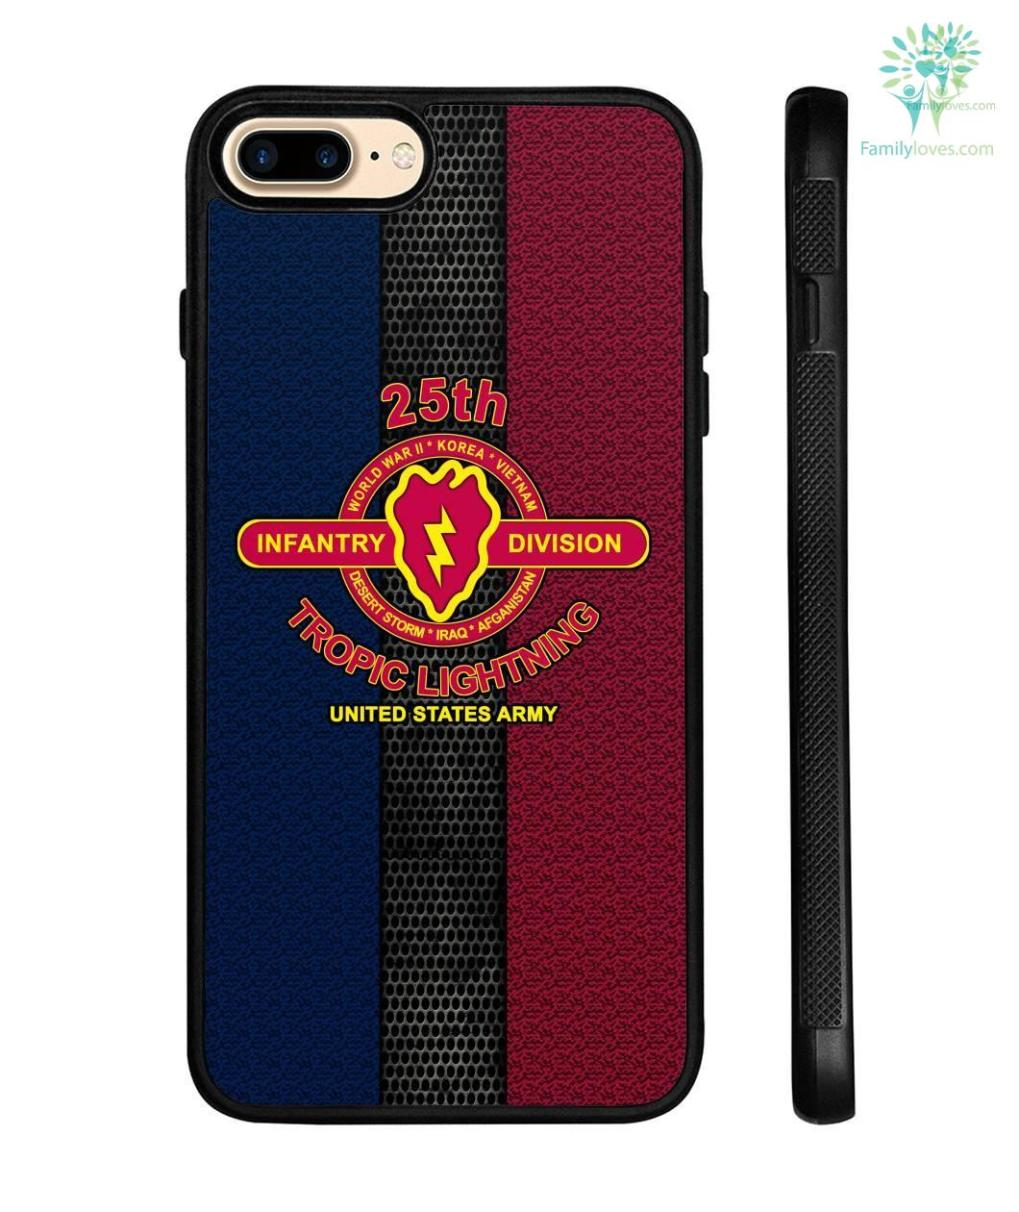 25th-infantry-division_6dee197f-87a8-29f3-0721-ce067c88dc9b 25th Infantry Division tropic lightning United States Army? iPhone cases  %tag